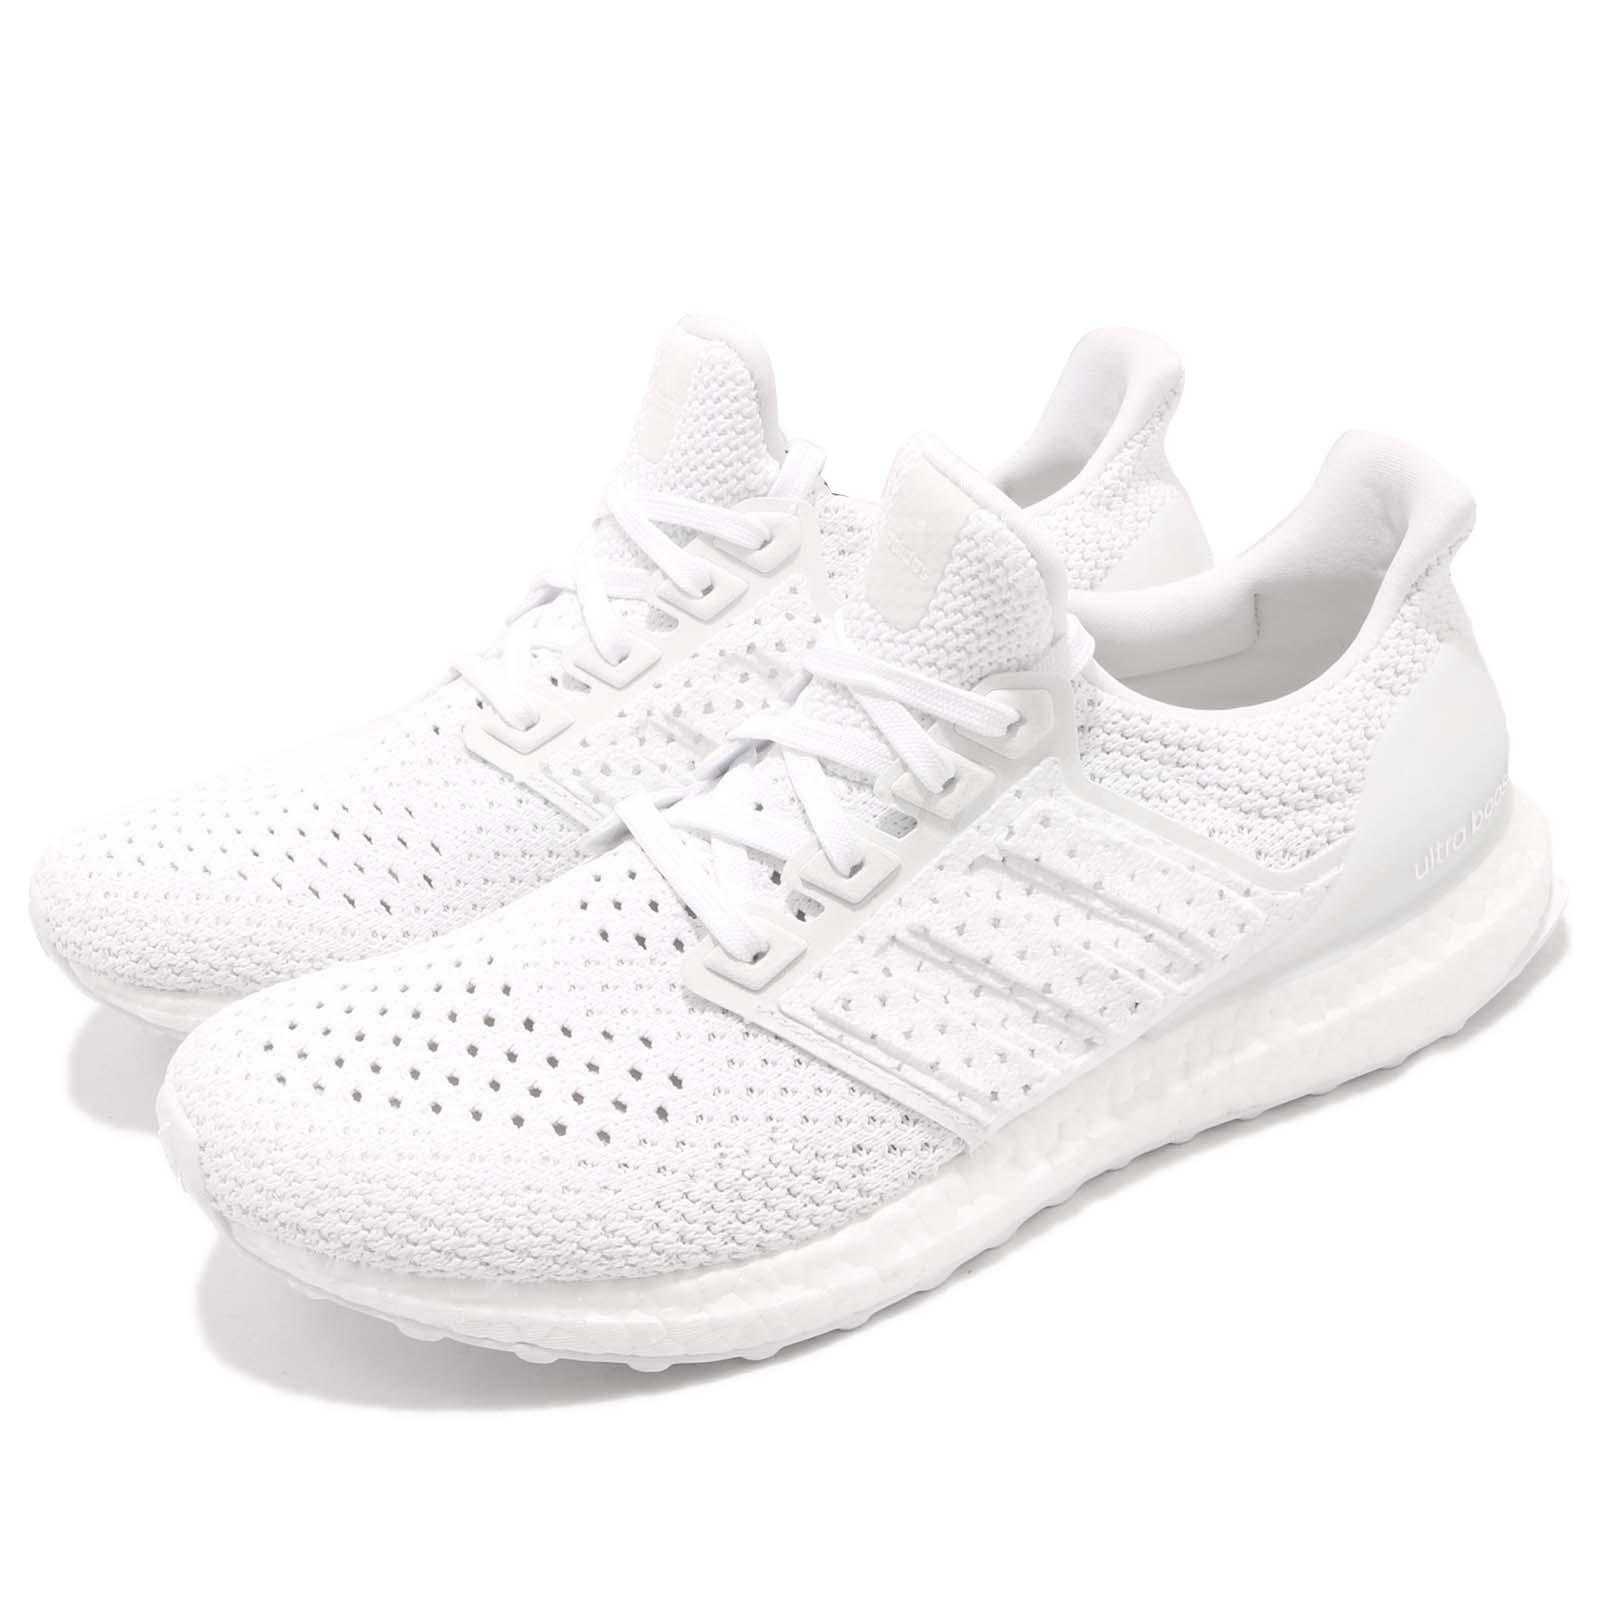 6134baf42 Details about adidas UltraBOOST Clima Footwear White Men Running Shoes  Sneakers Trainer BY8888